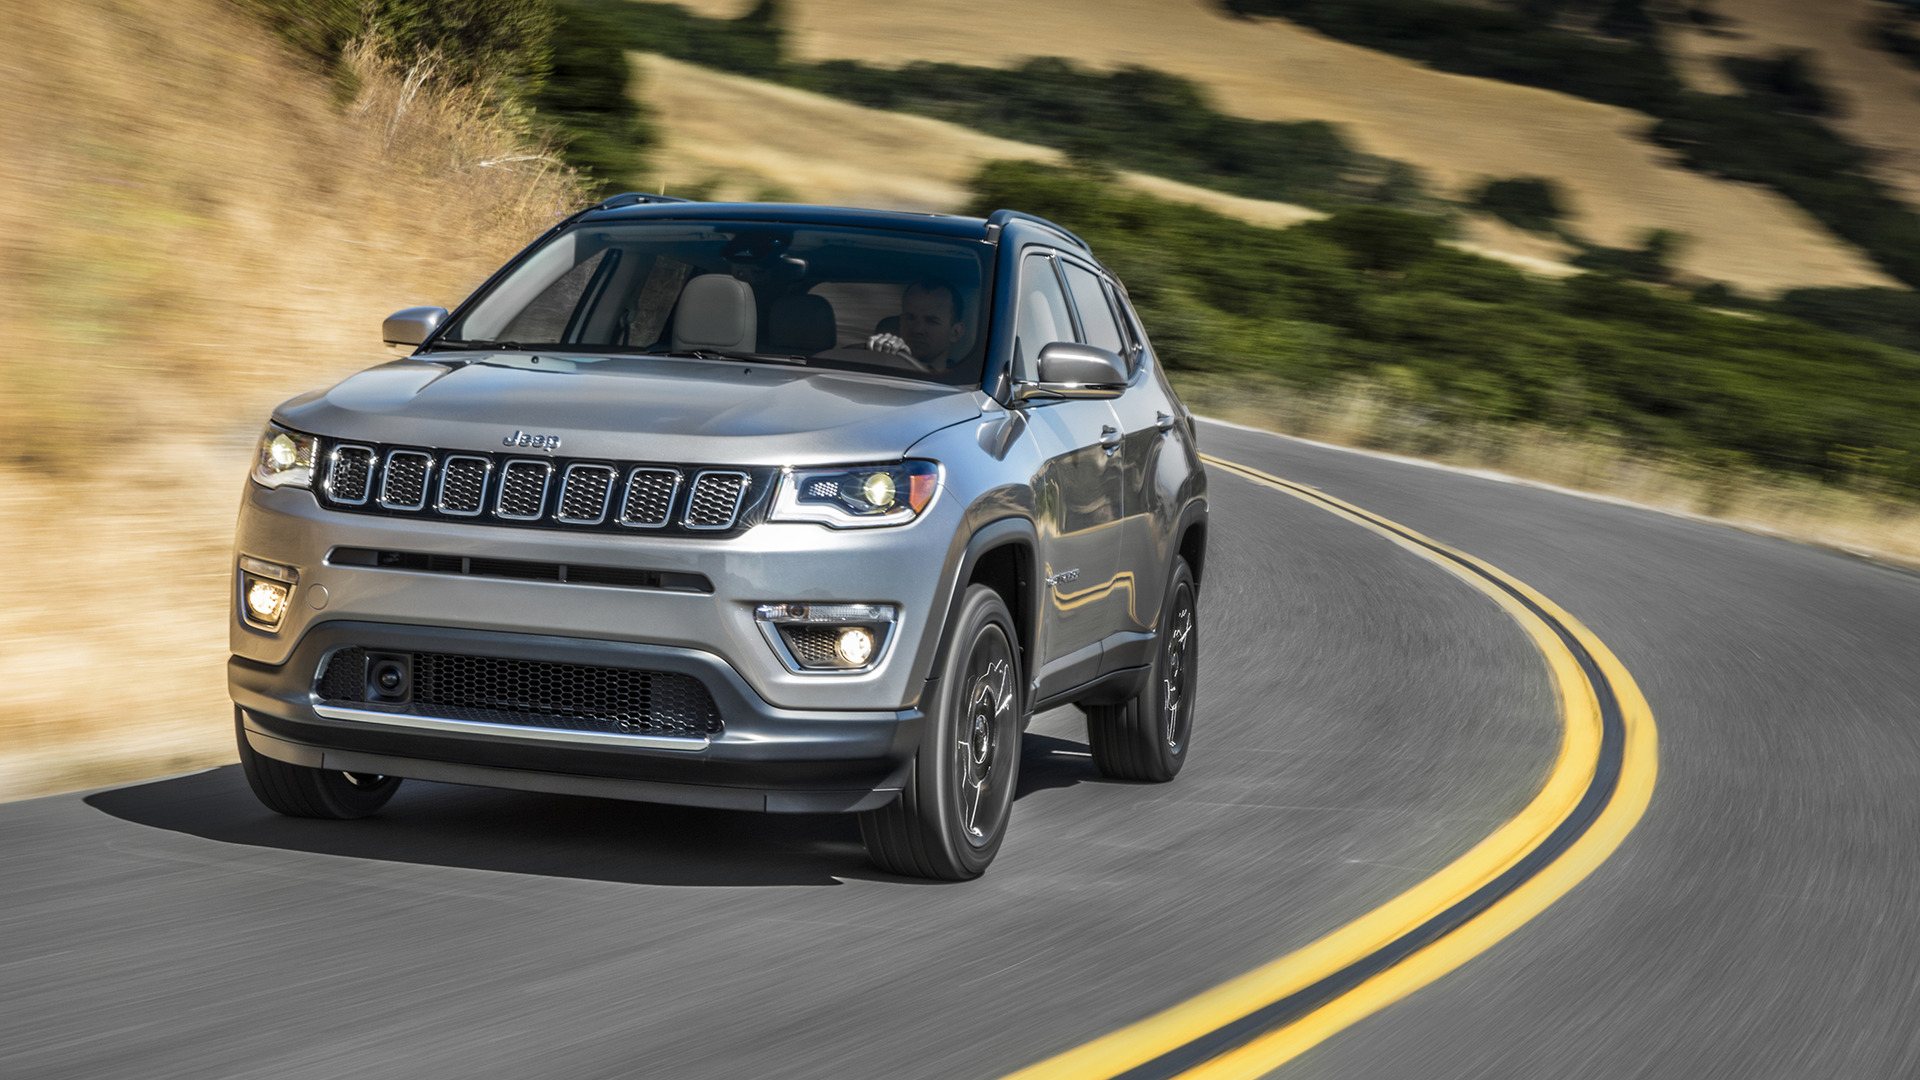 2017 Jeep Compass Makes U S Debut With 180 Hp Up To 30 Mpg